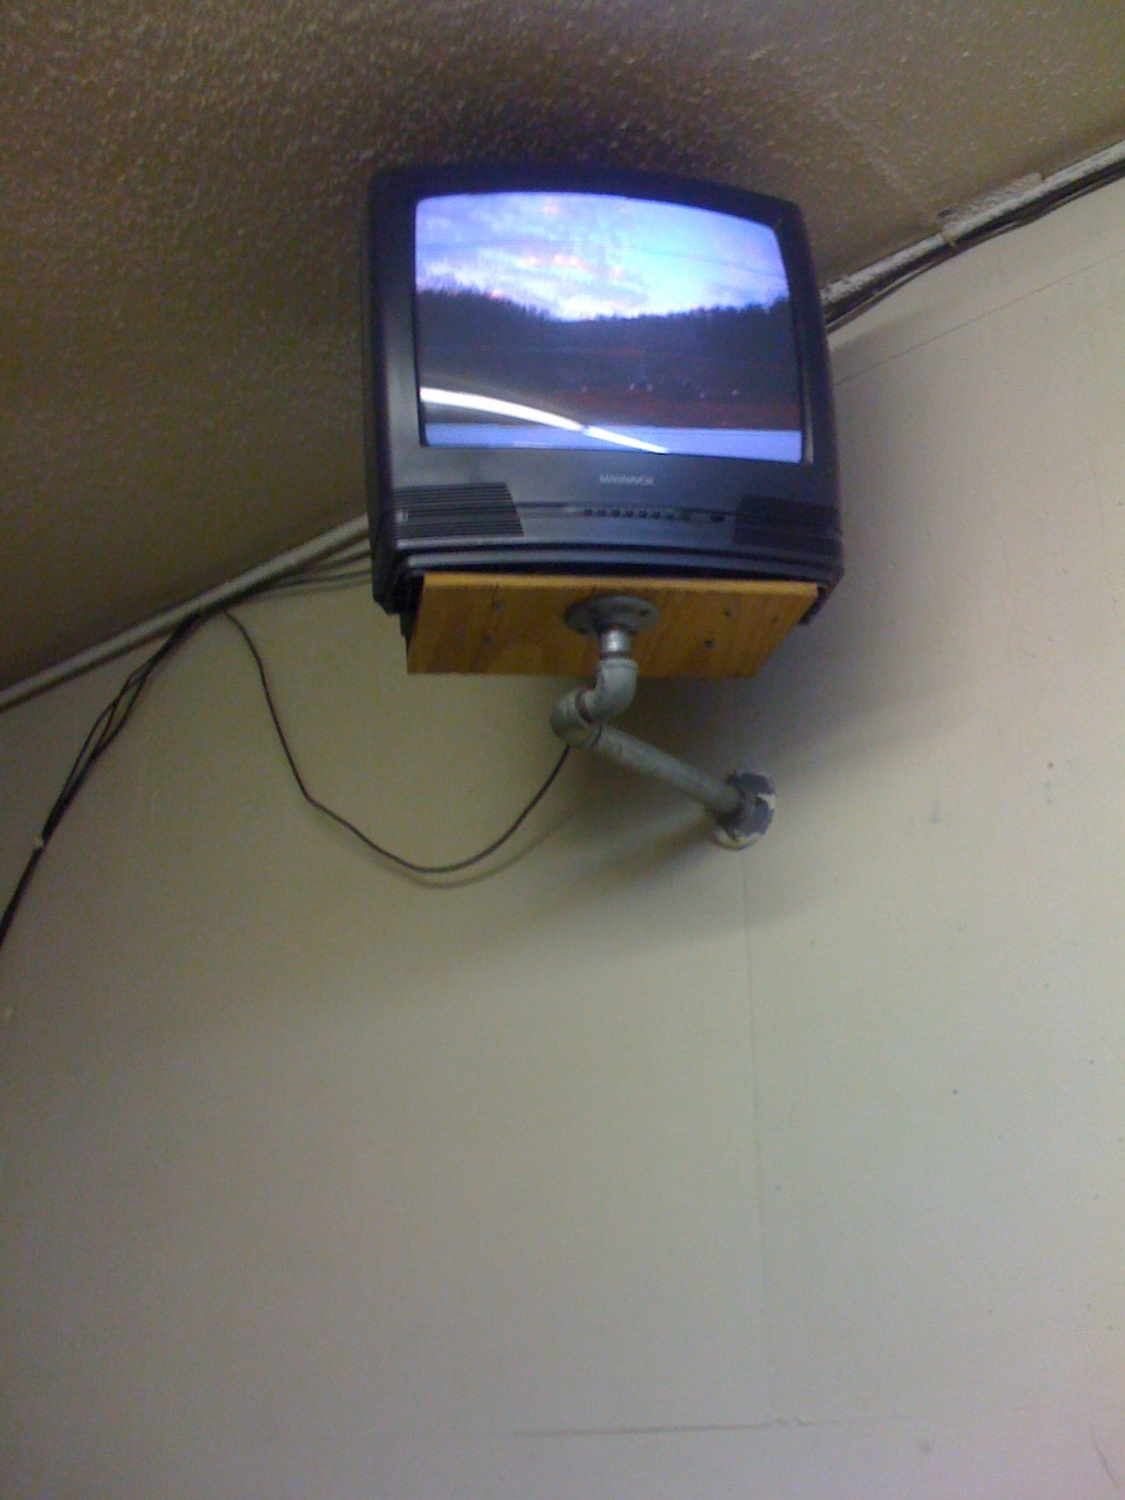 One of the TV monitors in the cafeteria that monitors the Main Line.